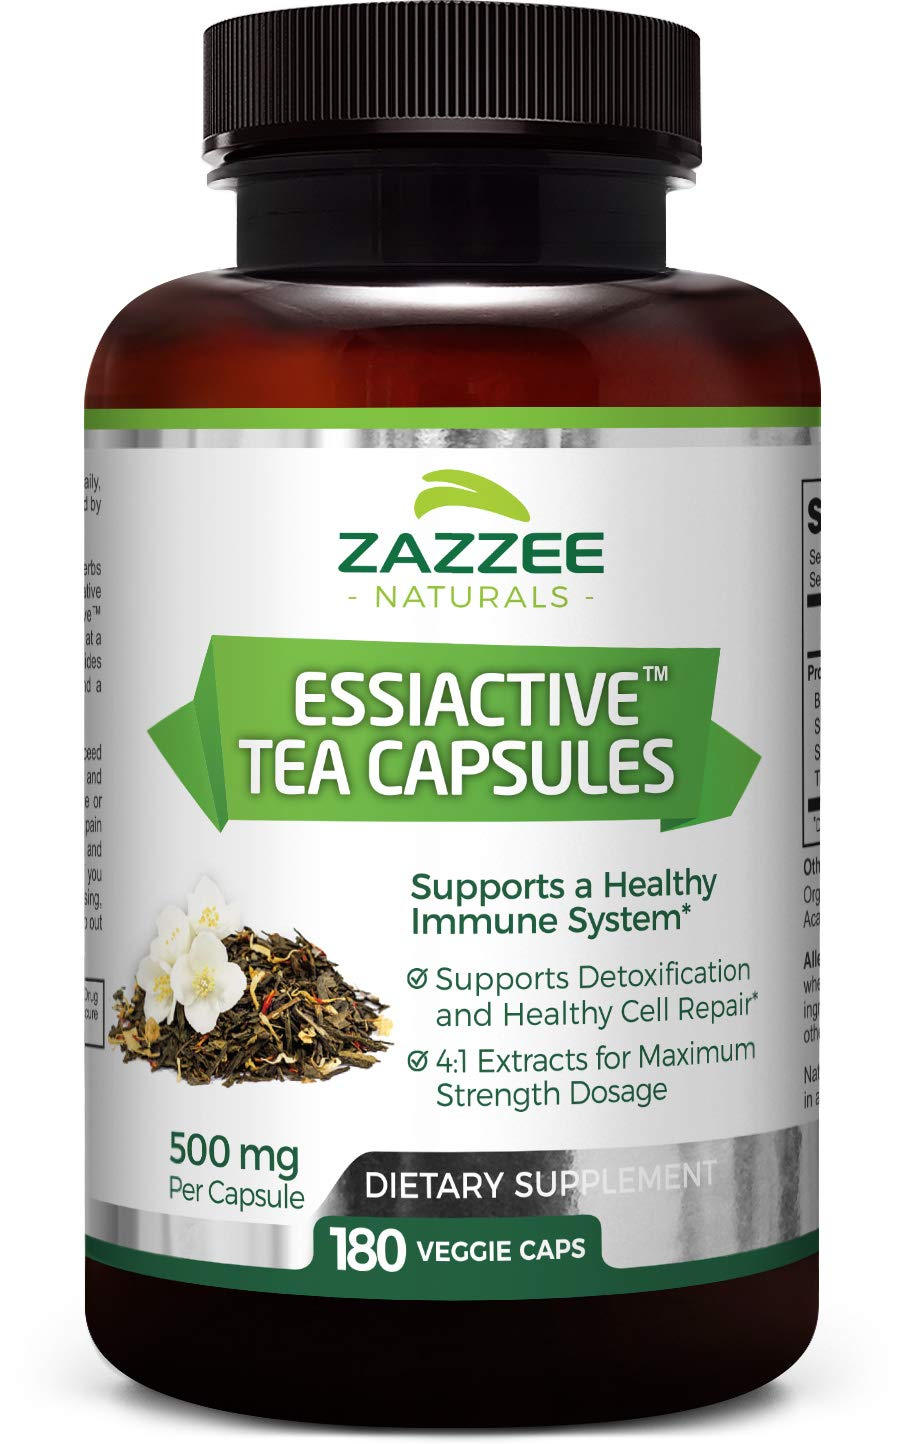 Essiac Tea 180 Veggie Capsules 500 mg | 4X Concentrated Extract is The Strongest Essiac Supplement Available | Non-GMO, Vegan and All-Natural | Supports a Healthy Immune System | Made in USA